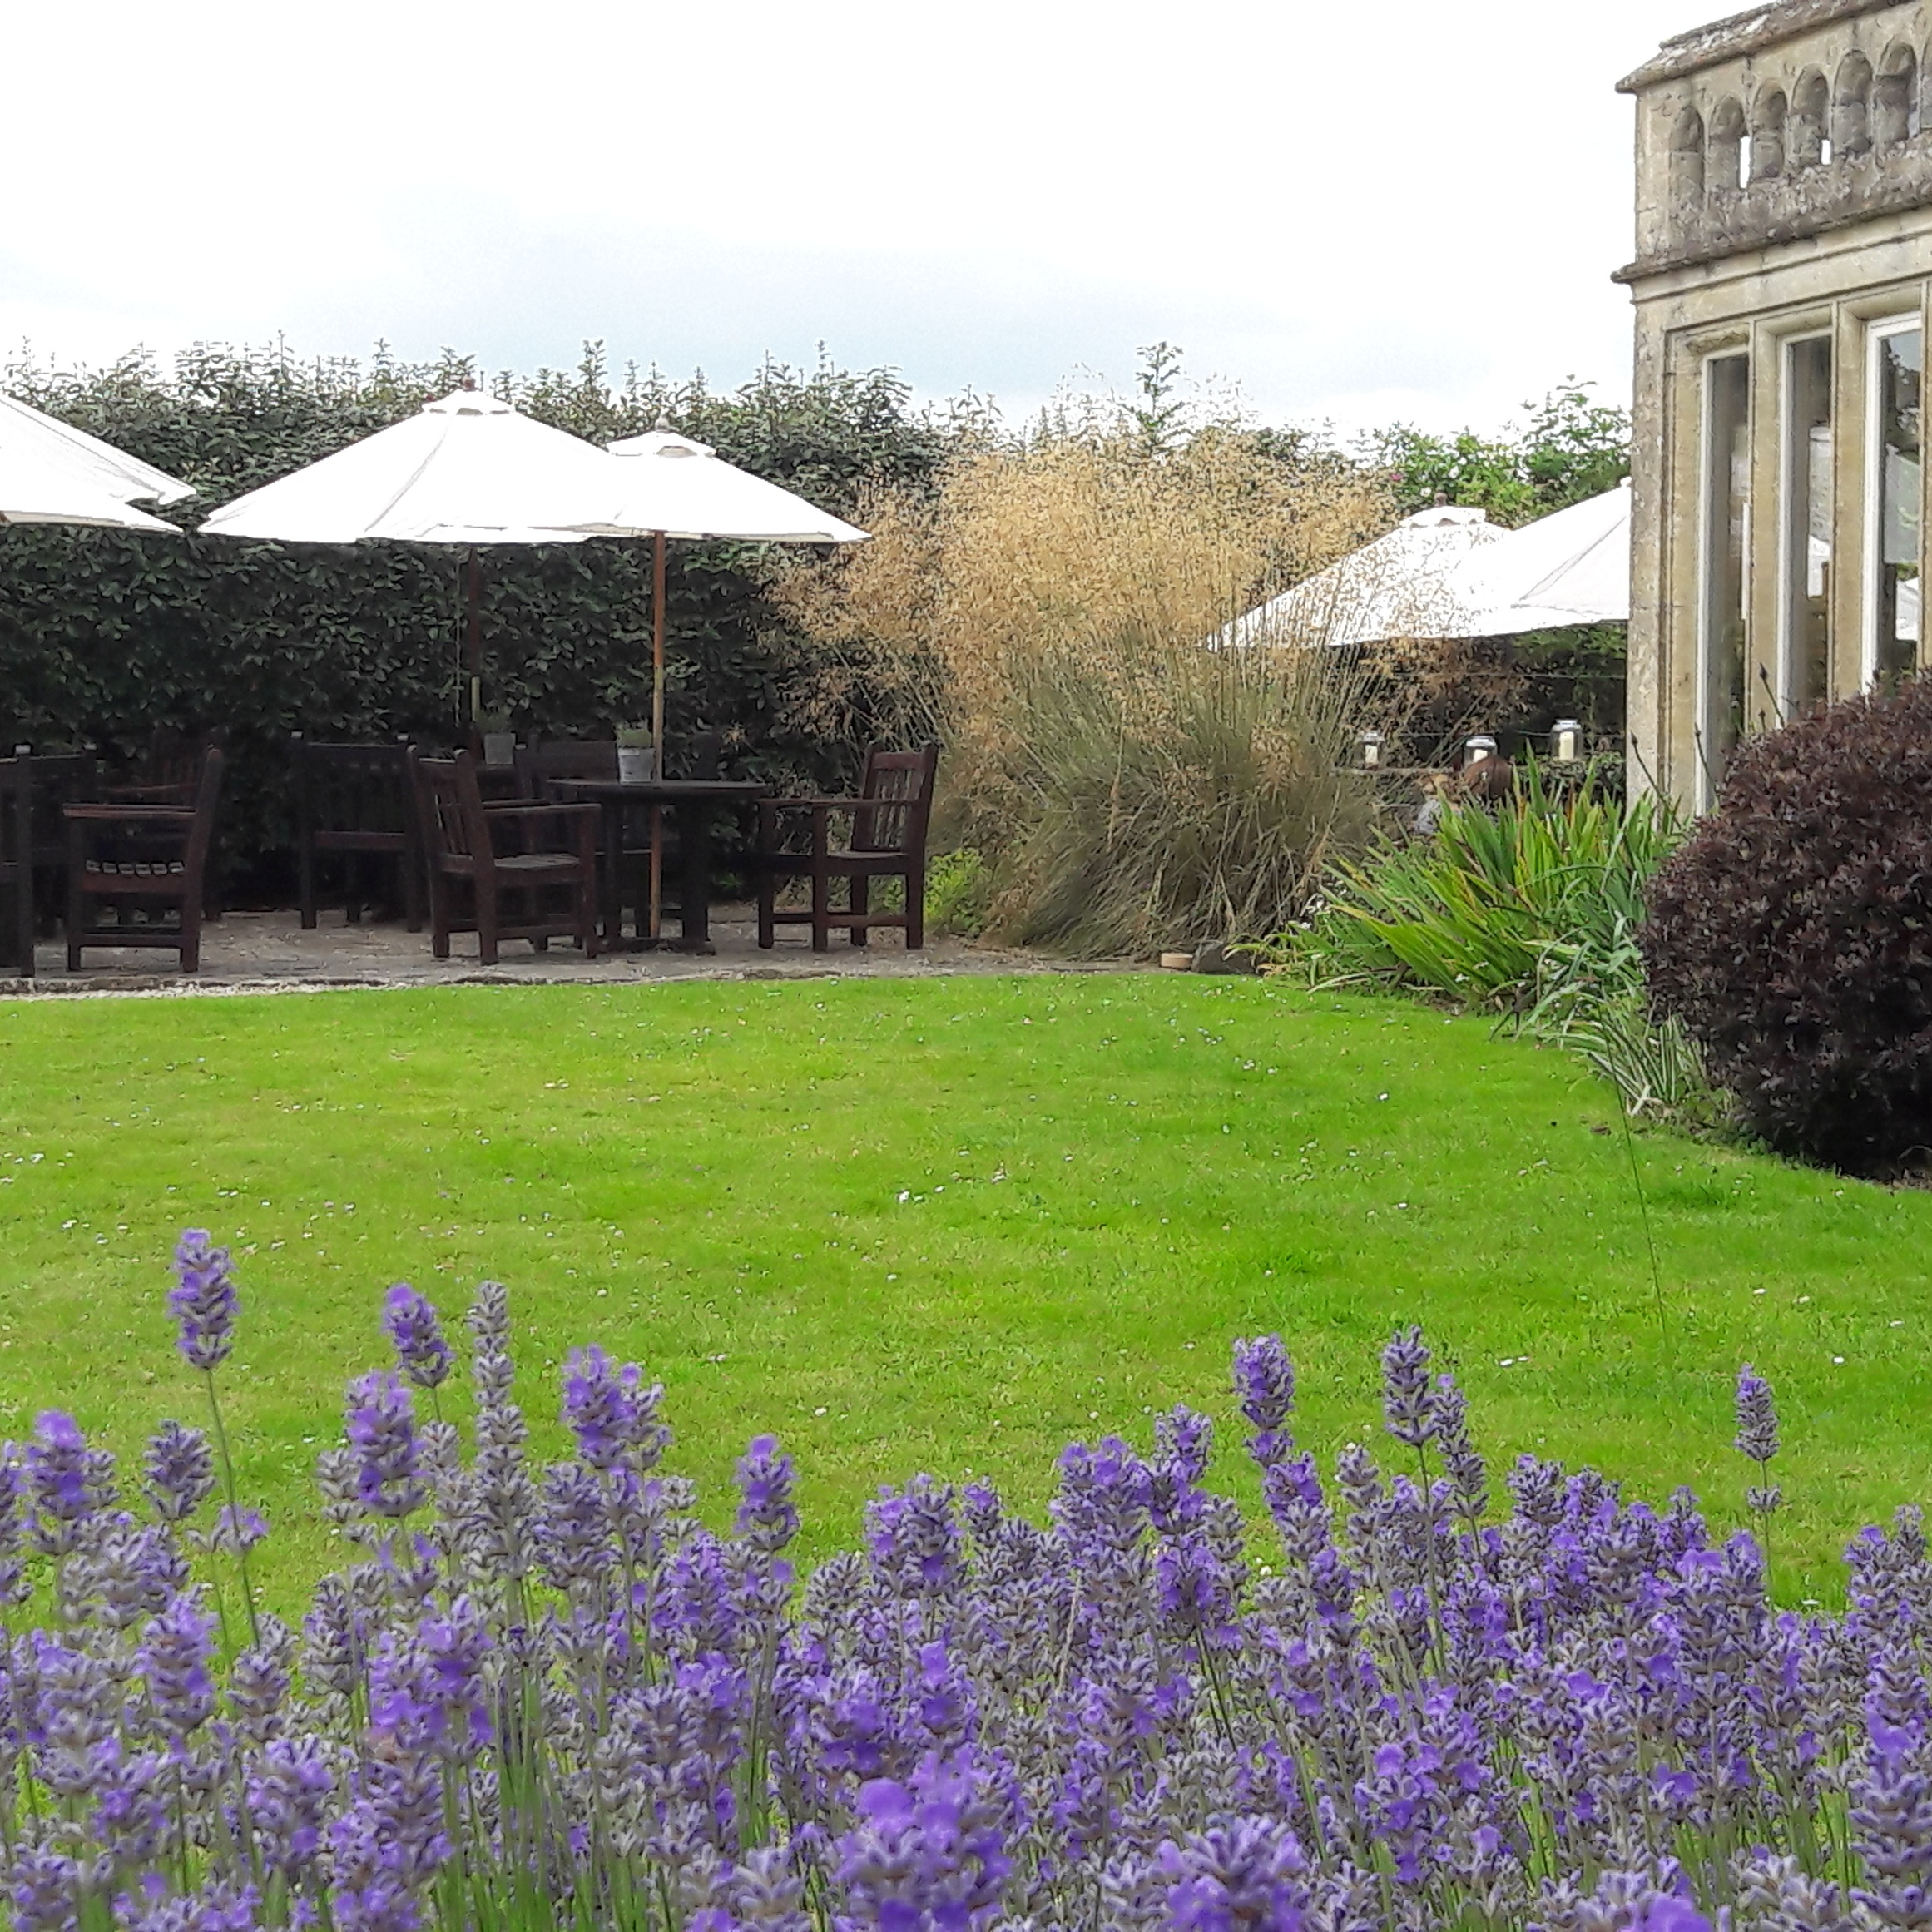 Lavender in the gardens of Woolley Grange luxury family hotel in Wiltshire